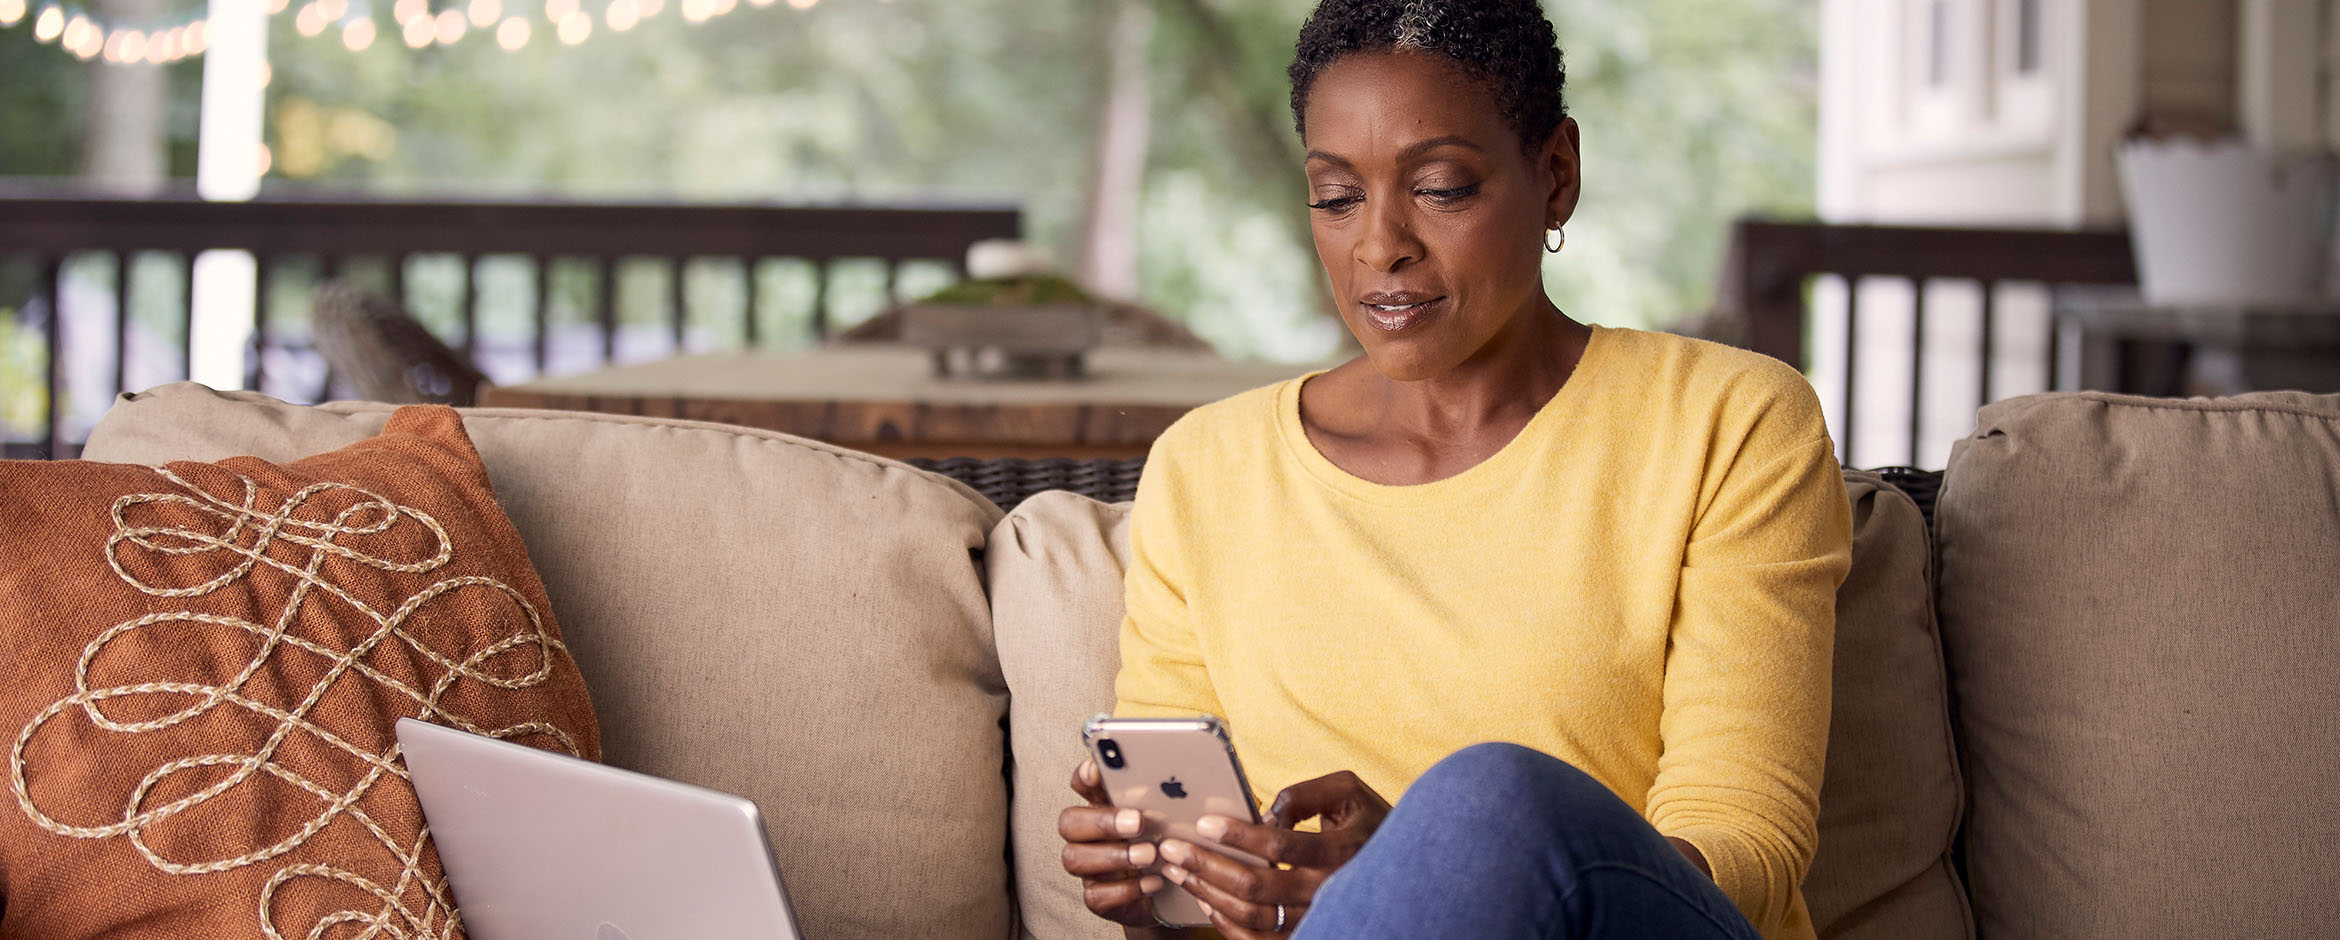 A woman sits on her sofa while looking at a medical app on her smartphone.